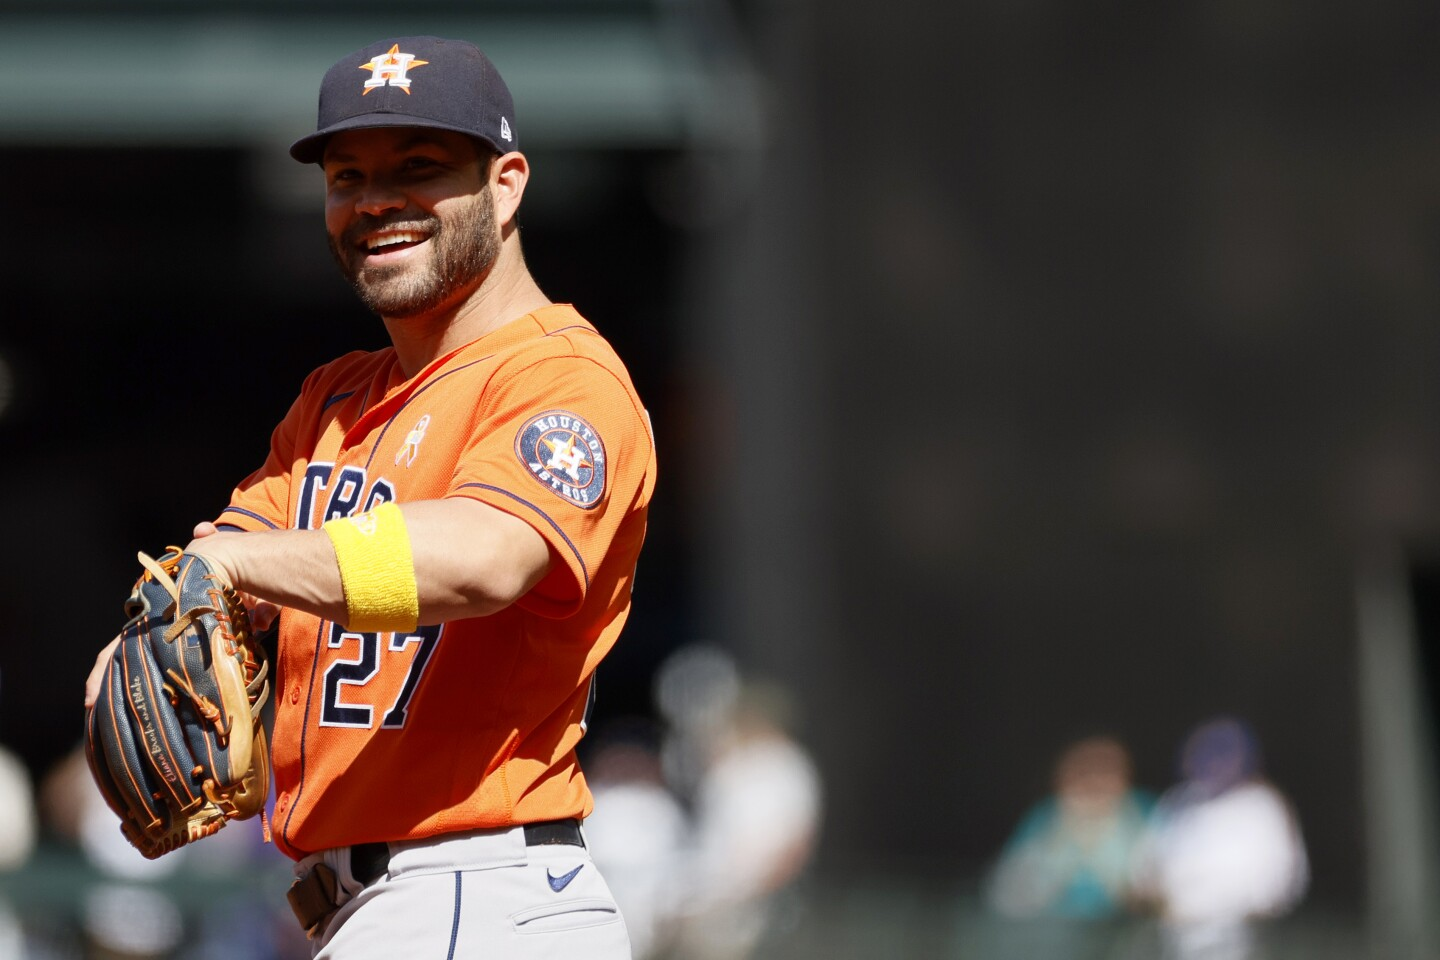 SEATTLE, WASHINGTON - SEPTEMBER 01: Jose Altuve #27 of the Houston Astros looks on during the game against the Seattle Mariners at T-Mobile Park on September 01, 2021 in Seattle, Washington. (Photo by Steph Chambers/Getty Images)